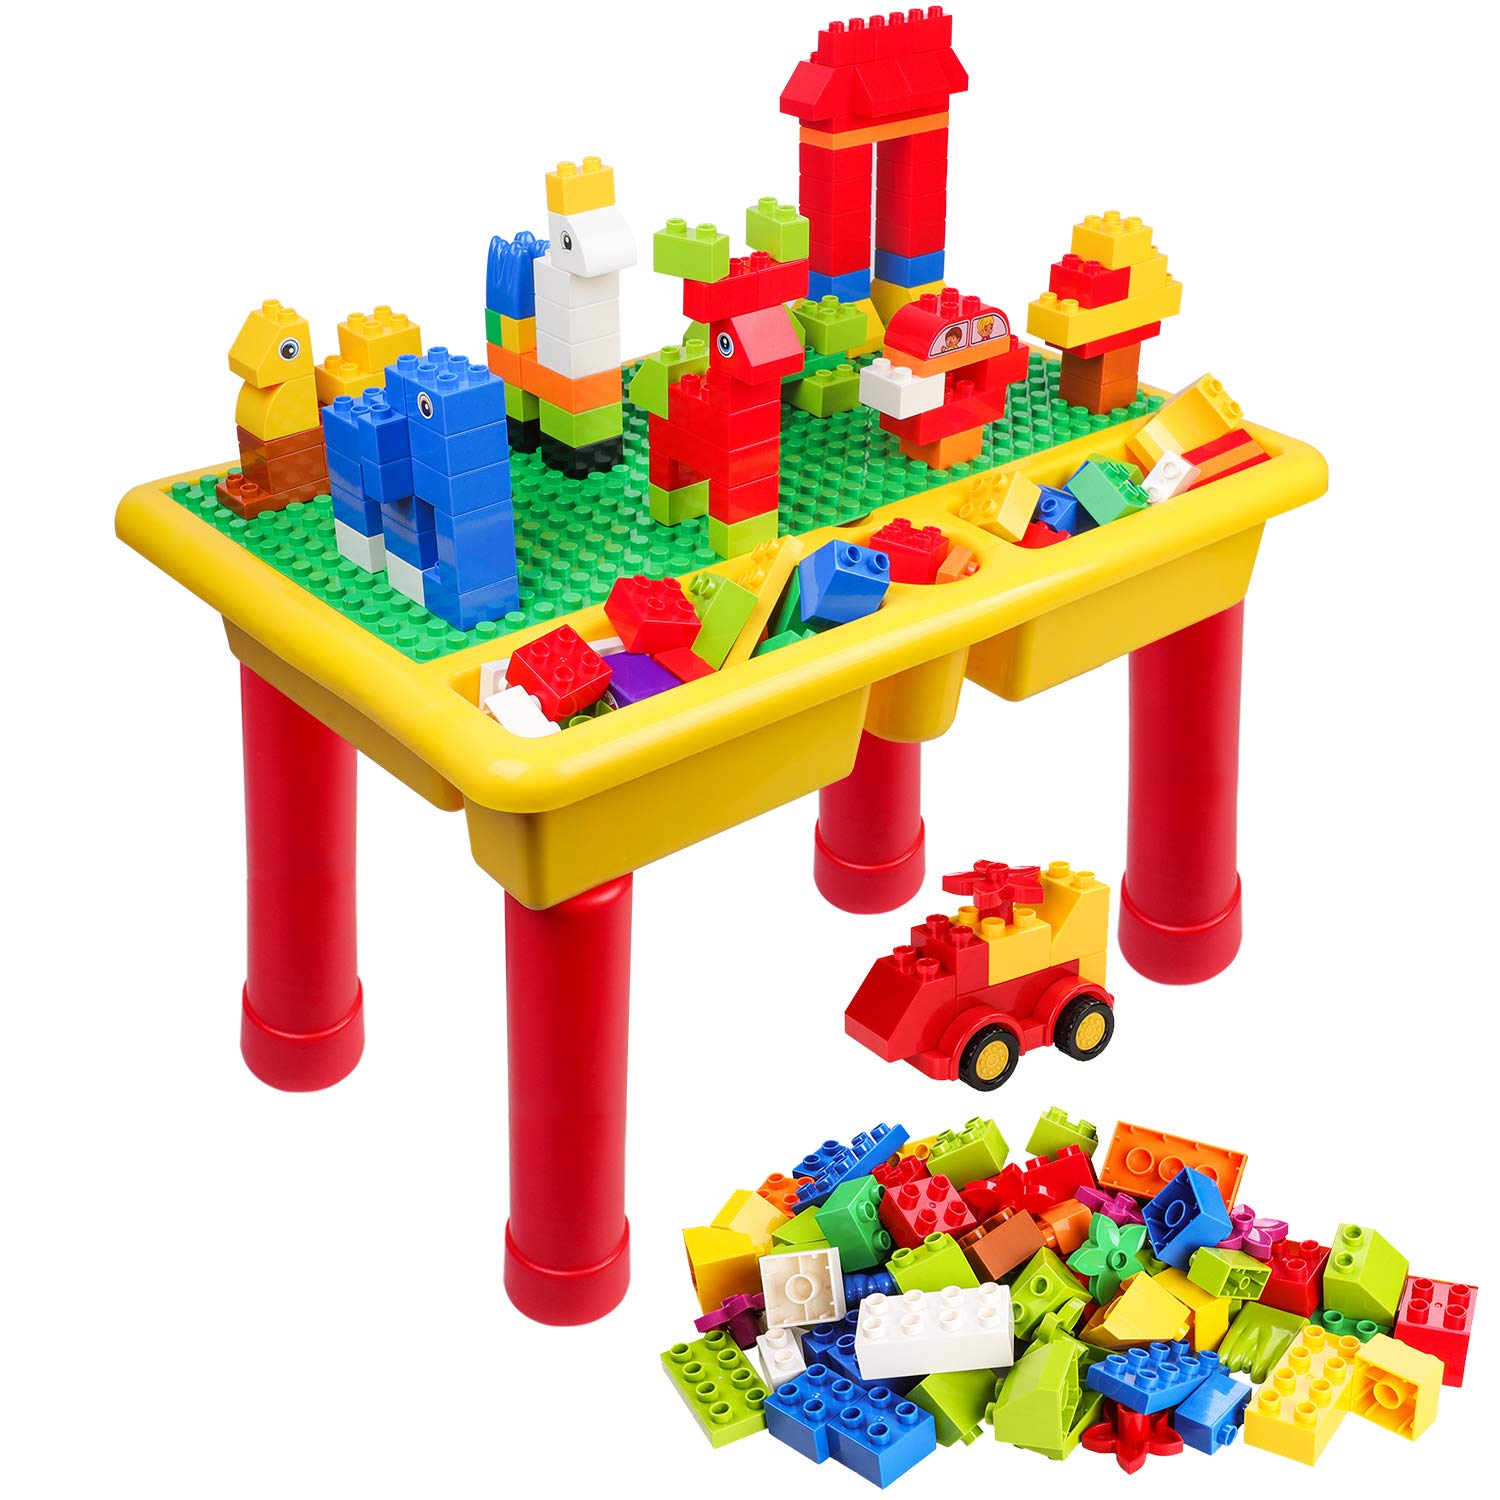 burgkidz Kids 2-in-1 Block Table with Baseplate Board and 68 Piece Large Building Blocks, Children Educational Toy Classic Big Building Bricks Desk, Primary Colors